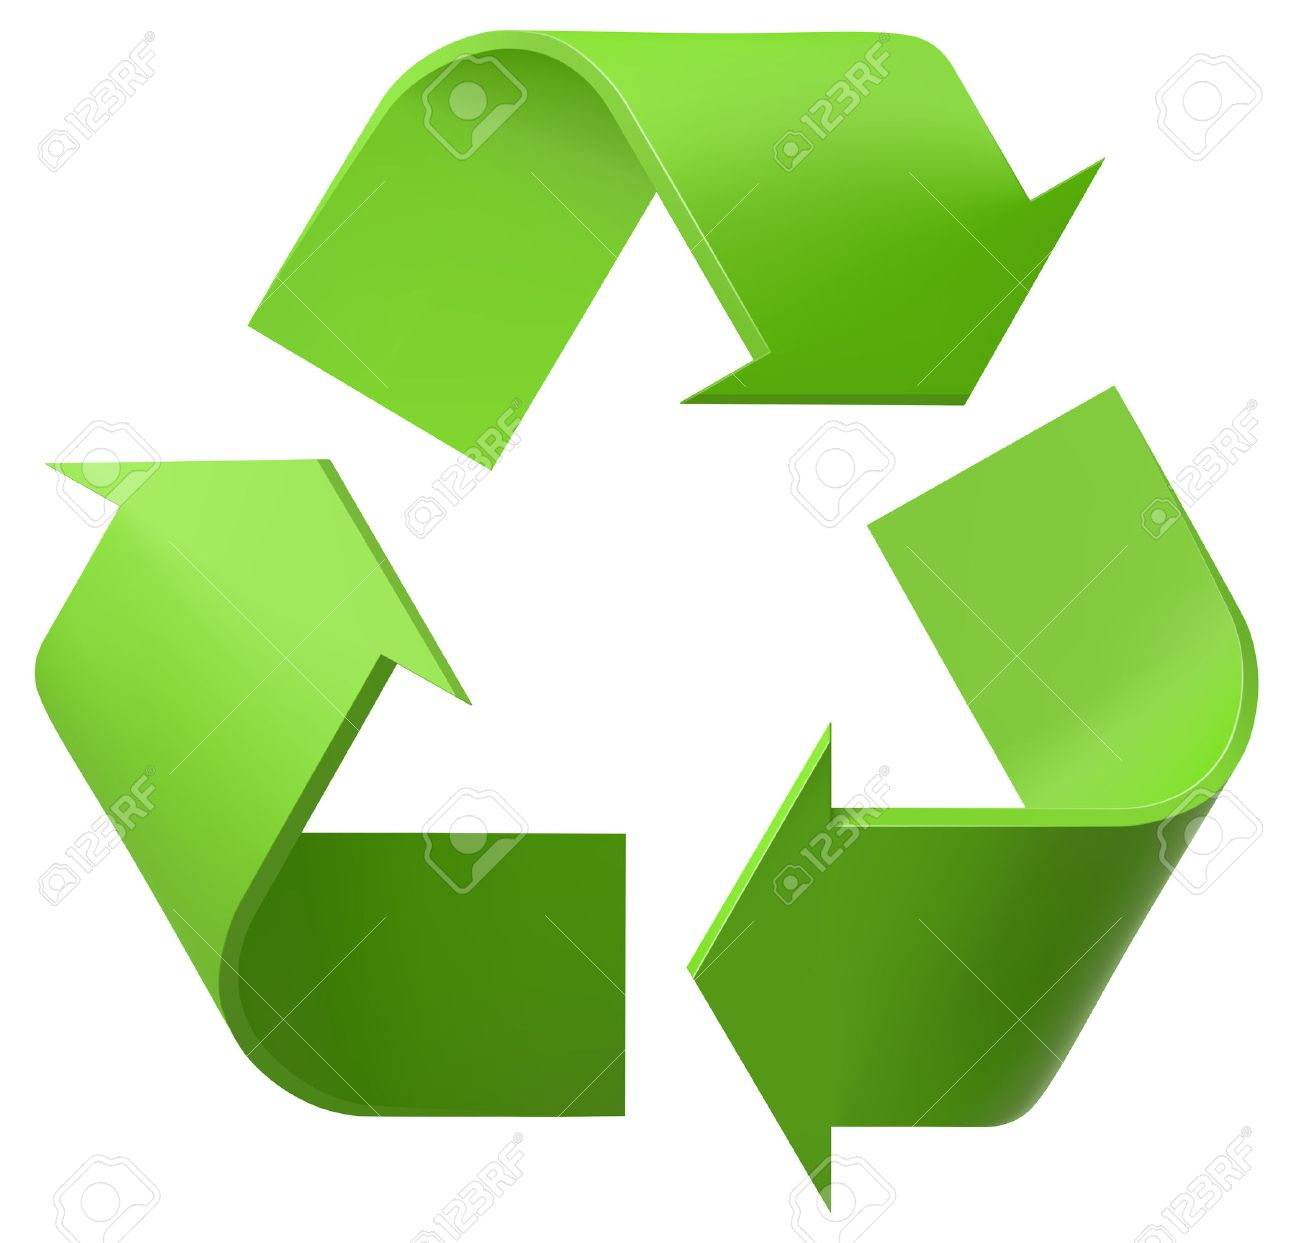 recycle logo royalty free cliparts vectors and stock illustration rh 123rf com vector recycle logo free download vector recycle symbol free download